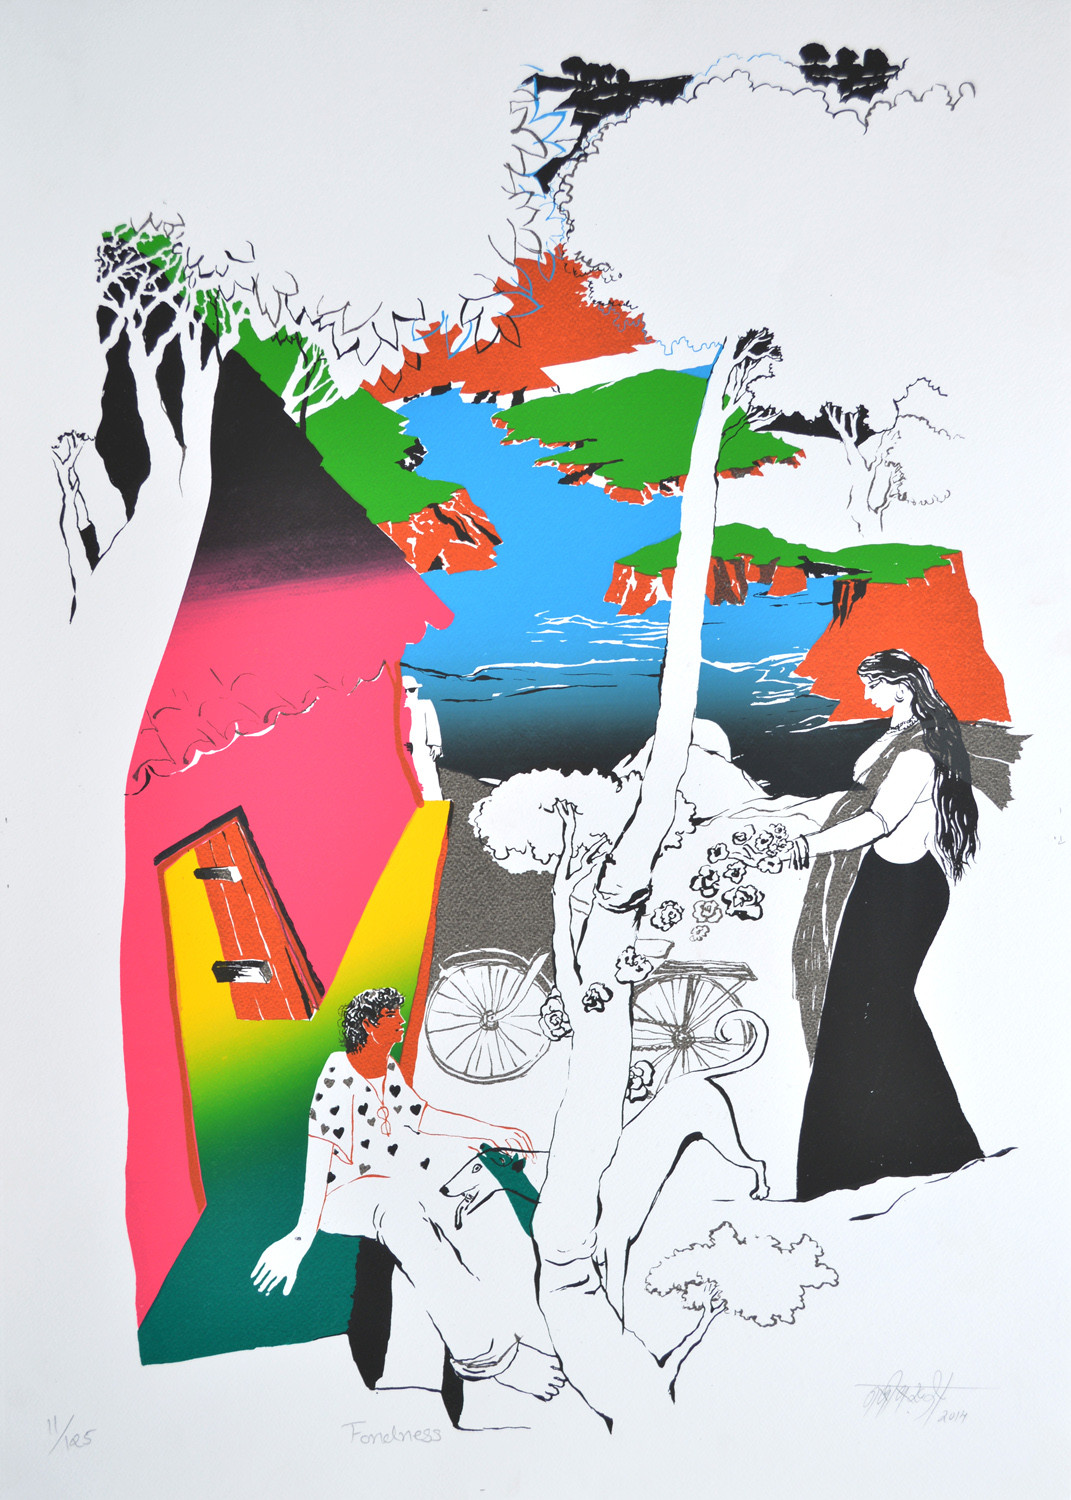 Fondness by Nabibaksh Mansoori, Expressionism Serigraph, Serigraph on Paper, Gray color